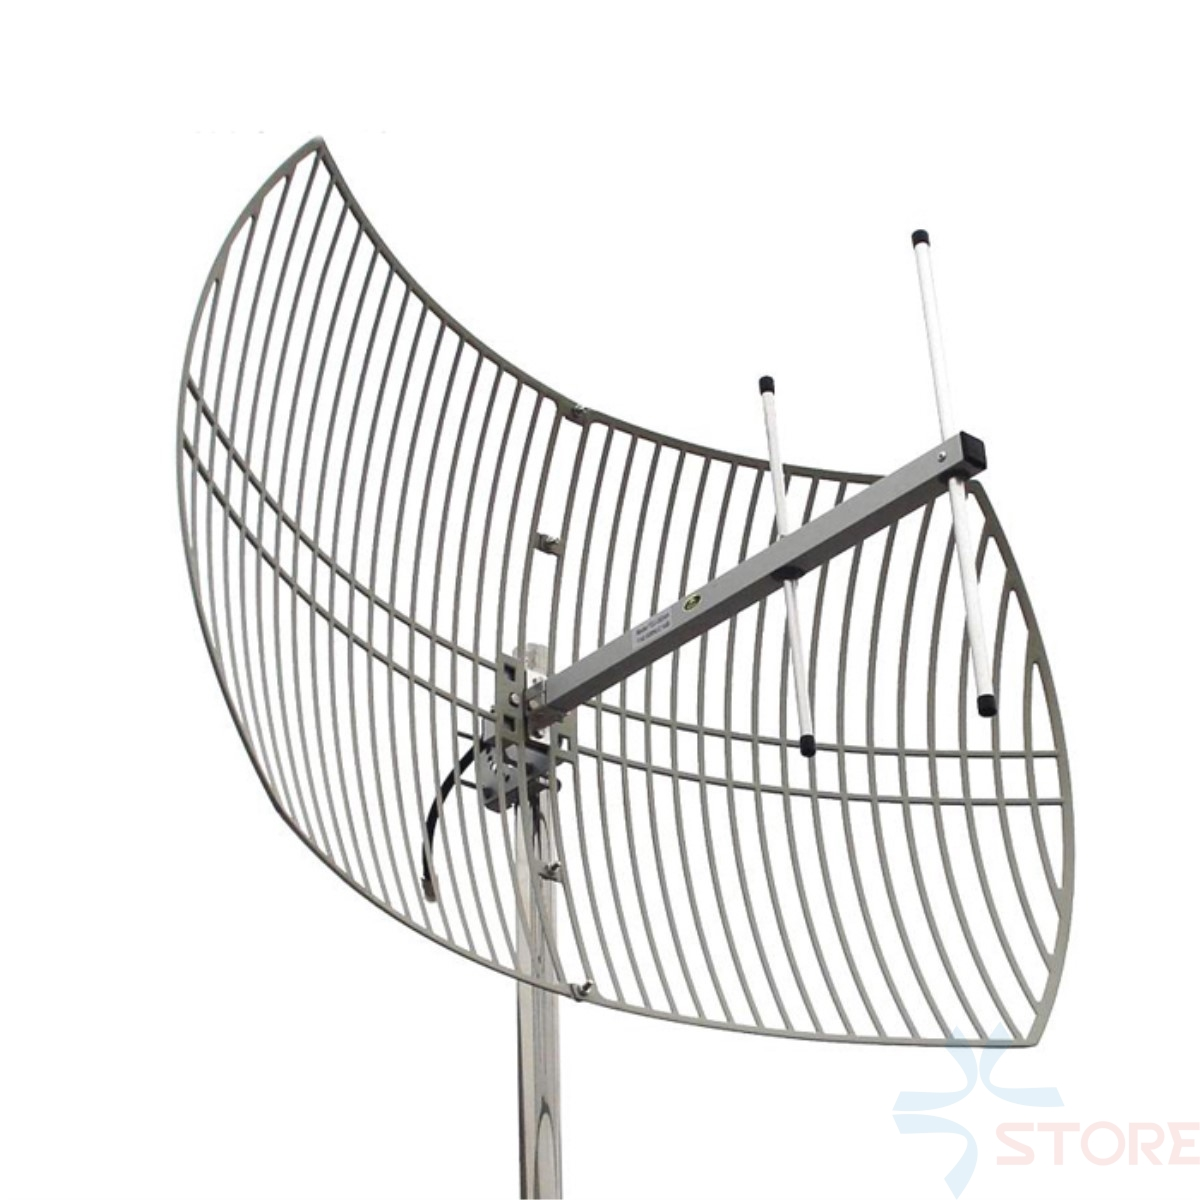 цена на 1.2G 15dBi High Gain Directional Parabolic Grid Antenna For Video Transmission FPV RC Airplane